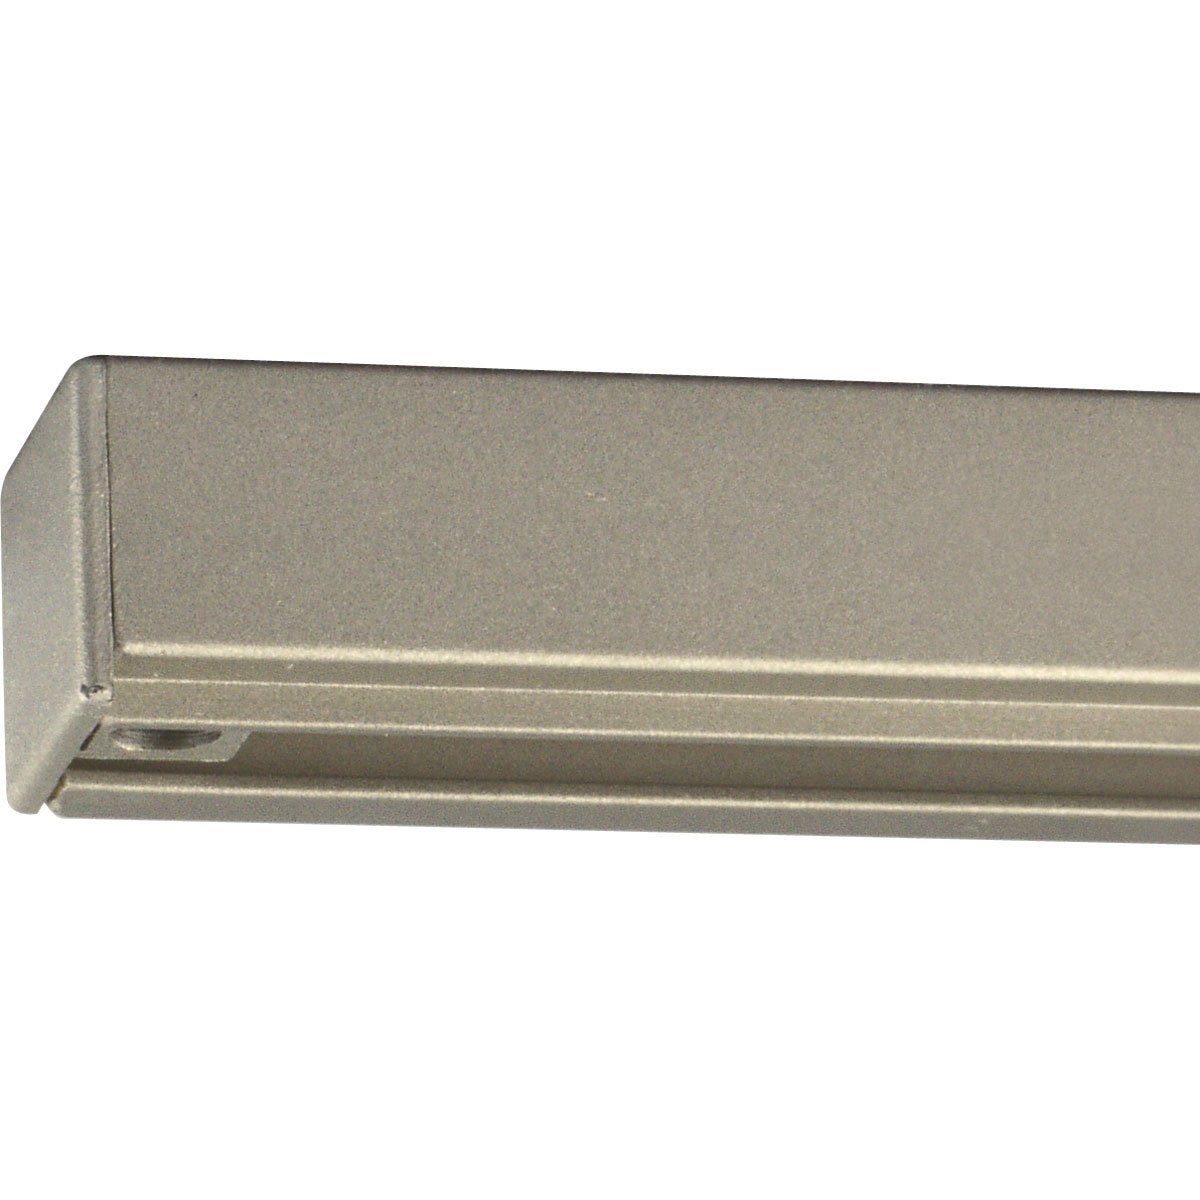 Progress Lighting P9106-09 Alpha Trak 12 Foot Section, Brushed Nickel